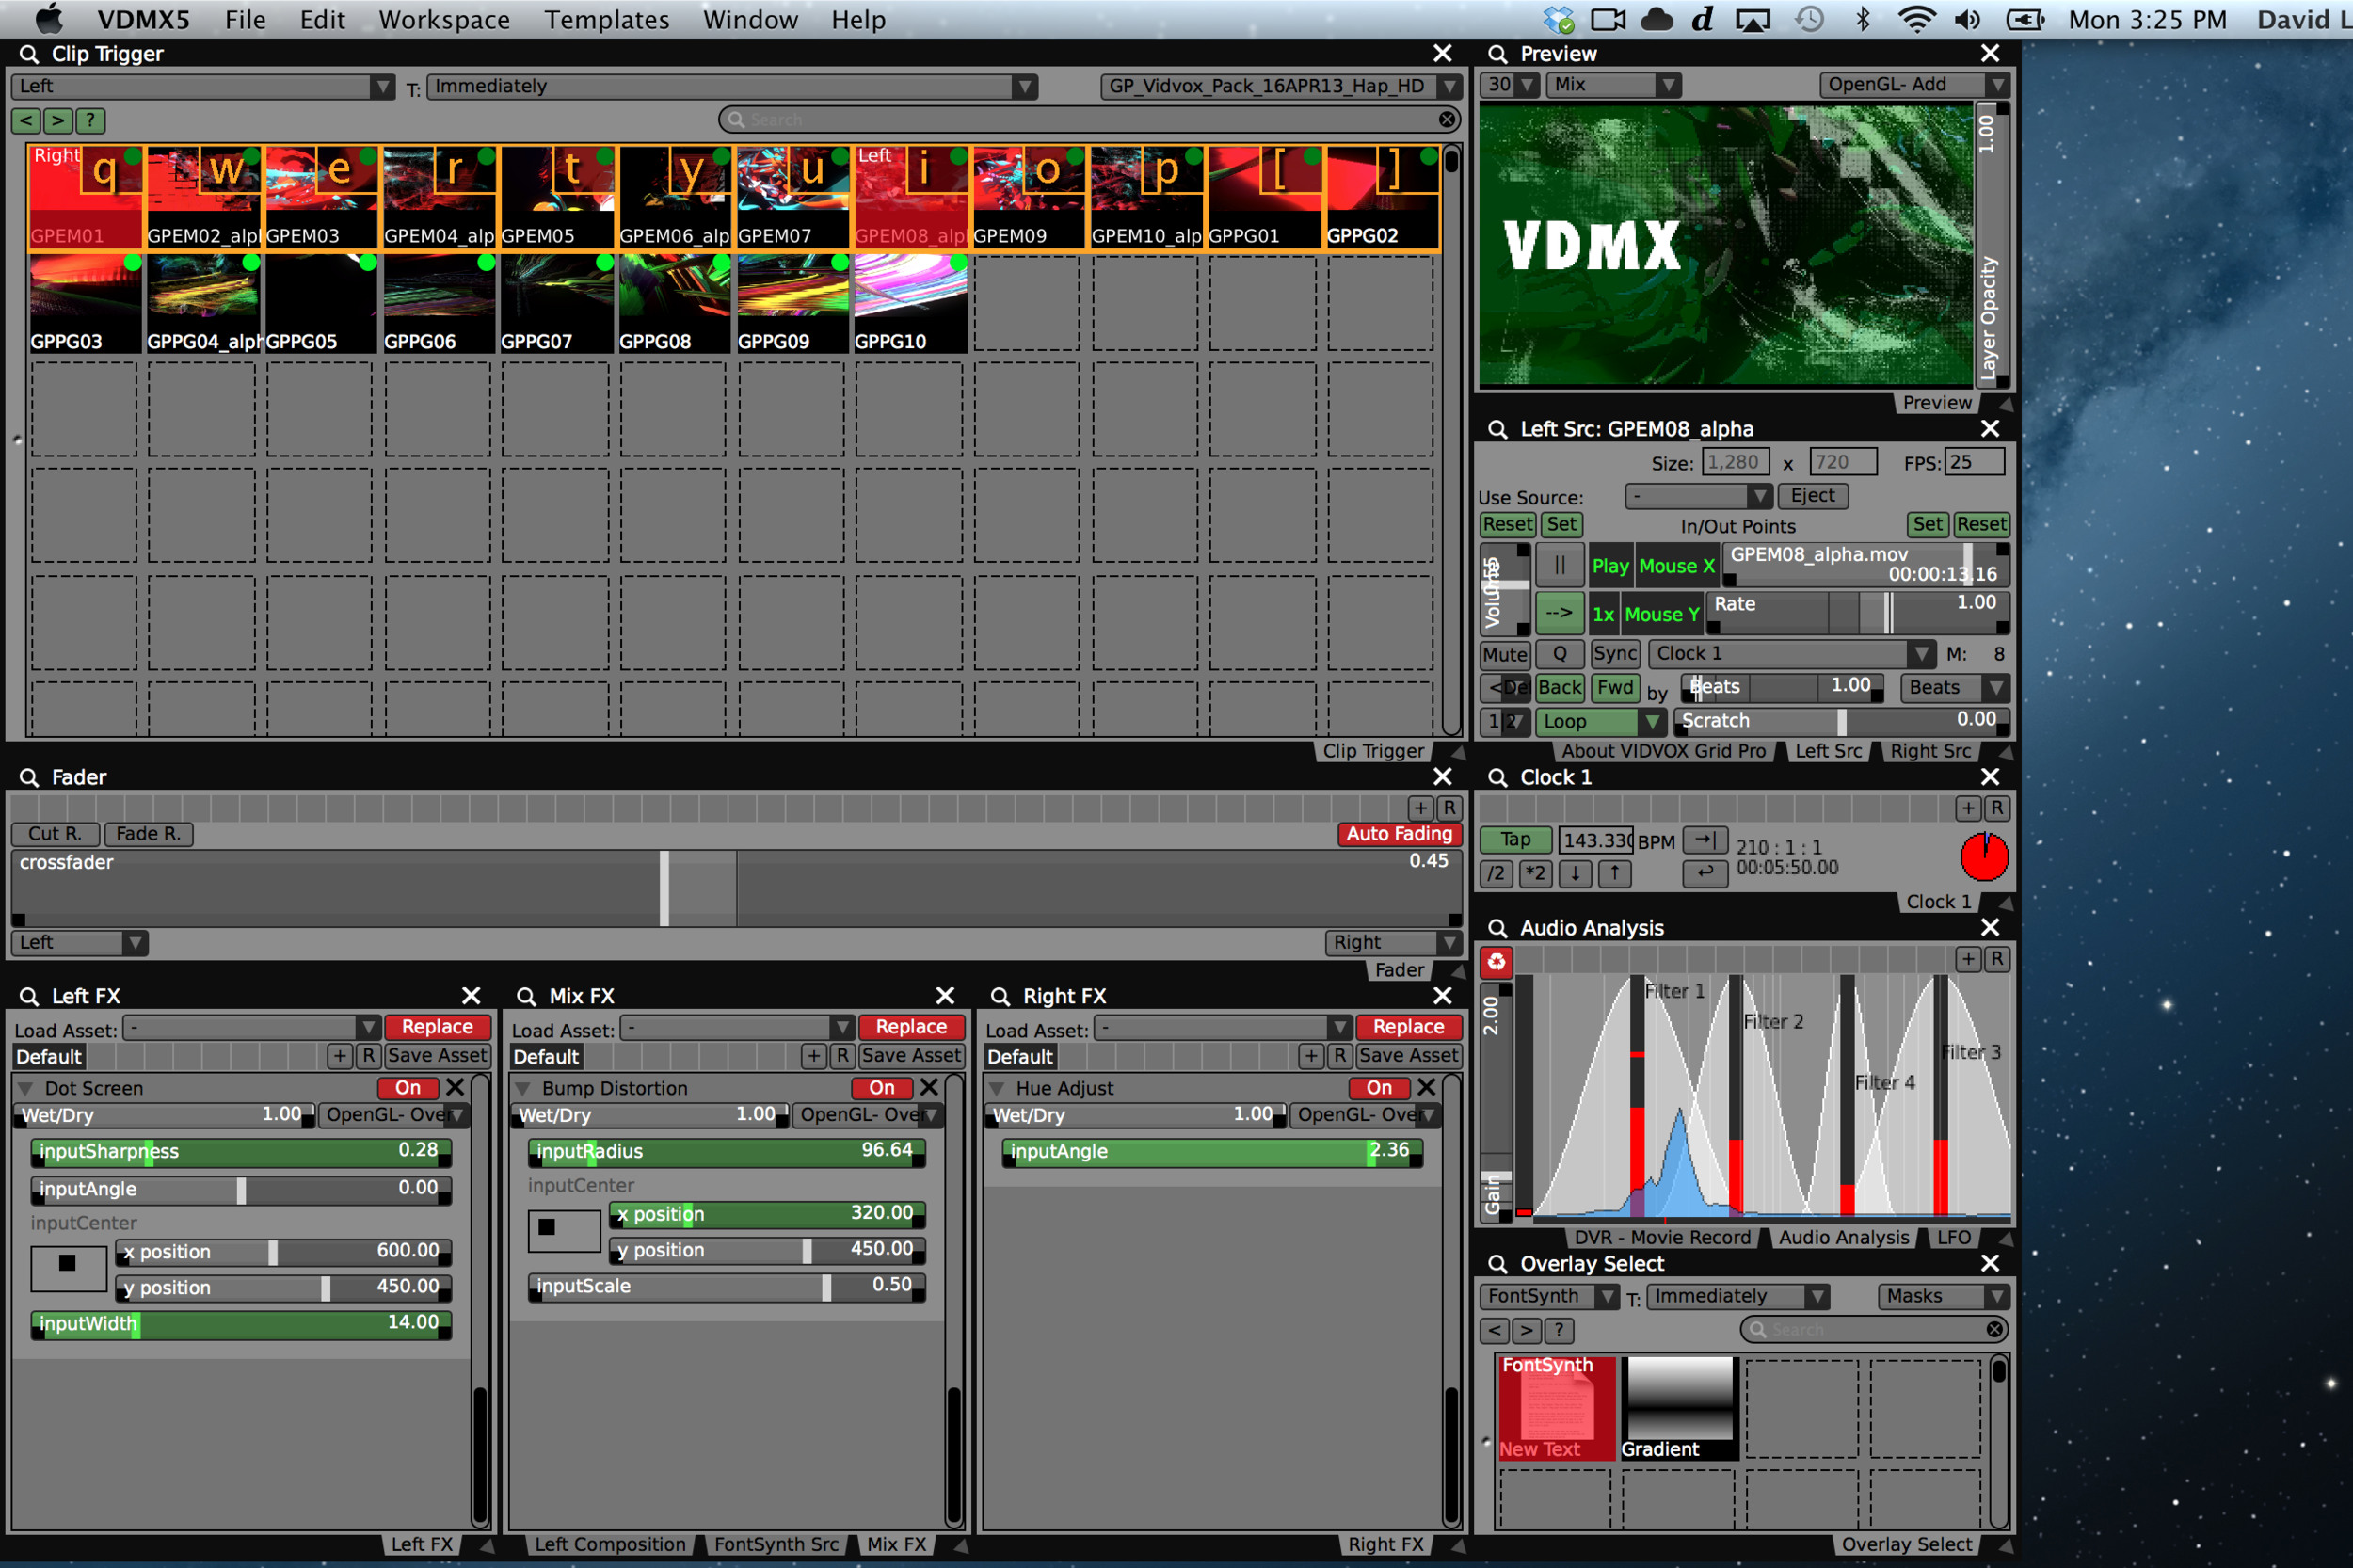 Completed Grid Pro template for VDMX.